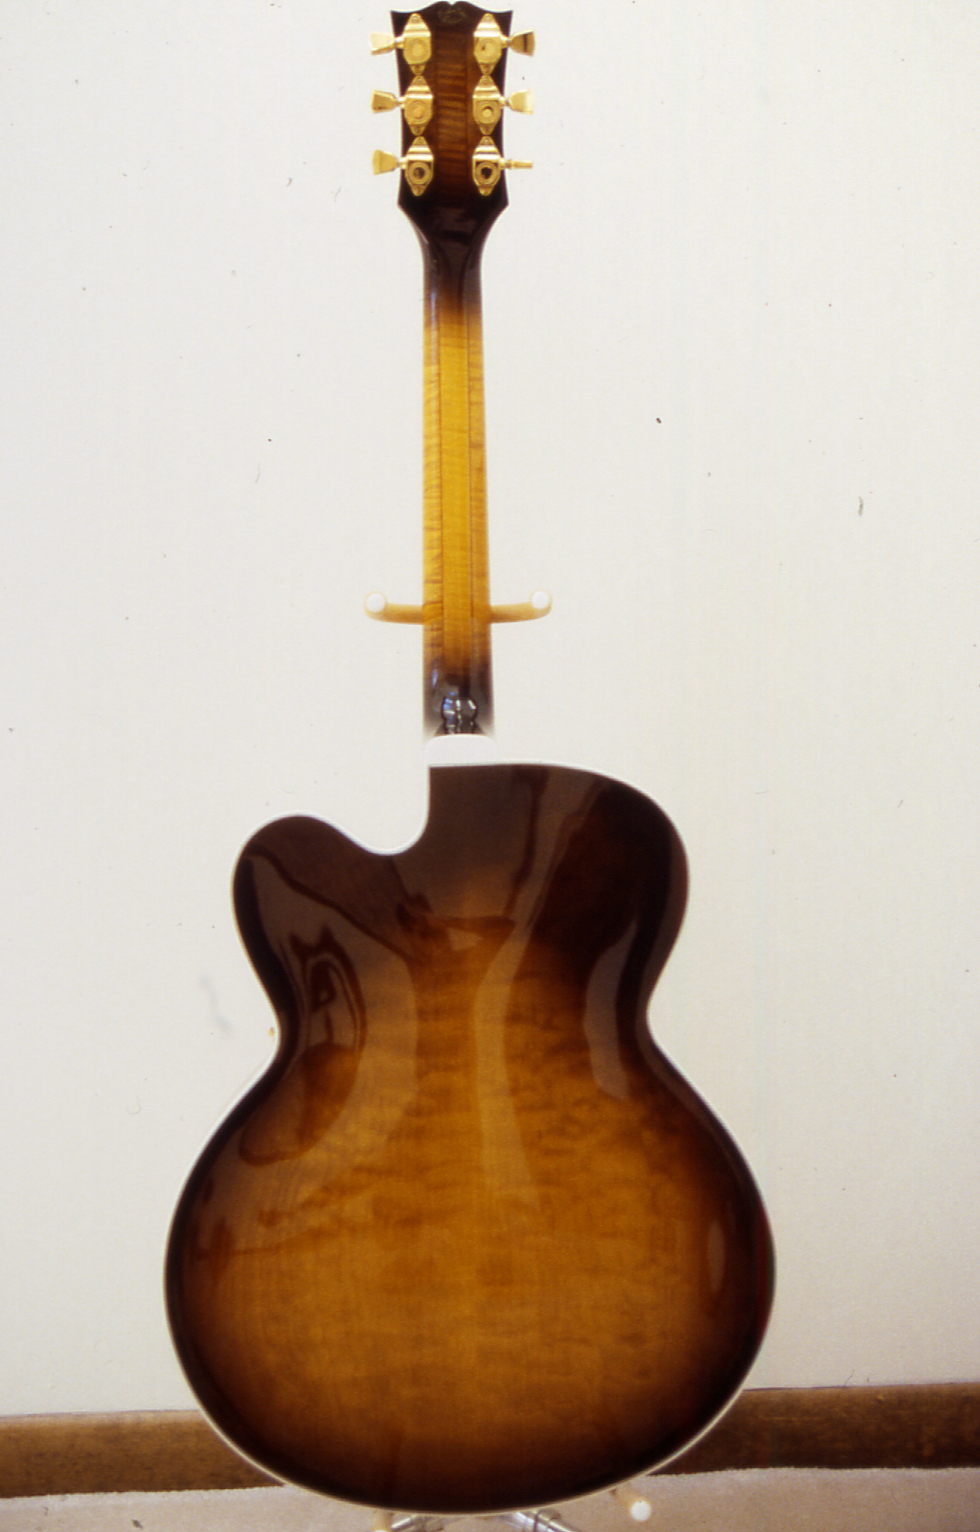 Your Gibson L-5 Choice-l-5c-1987-rear-jpg